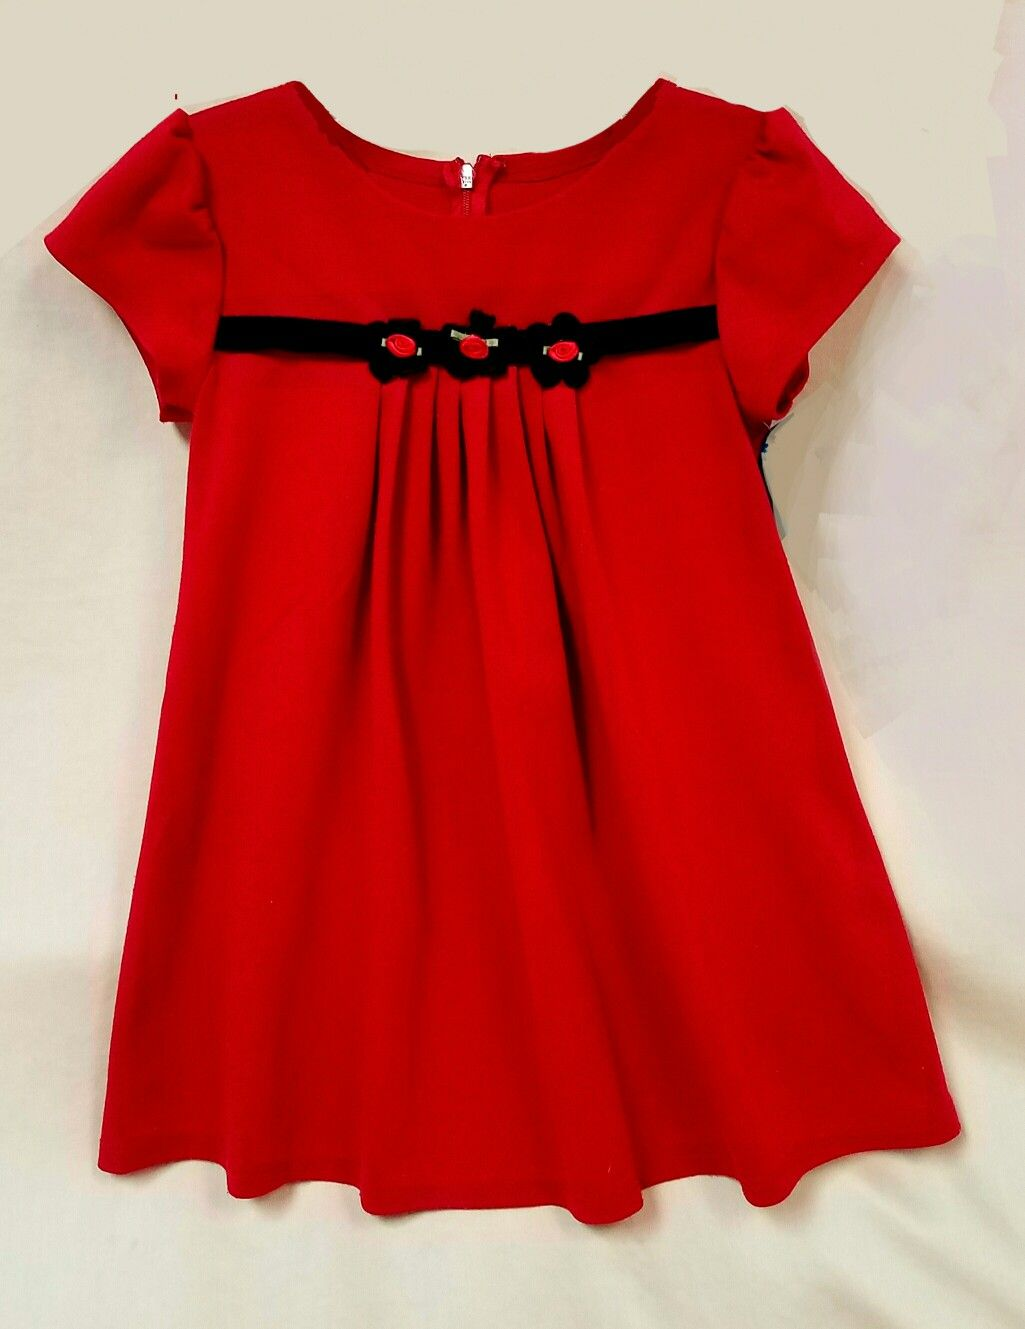 Buy Christmas Infant dresses pictures trends